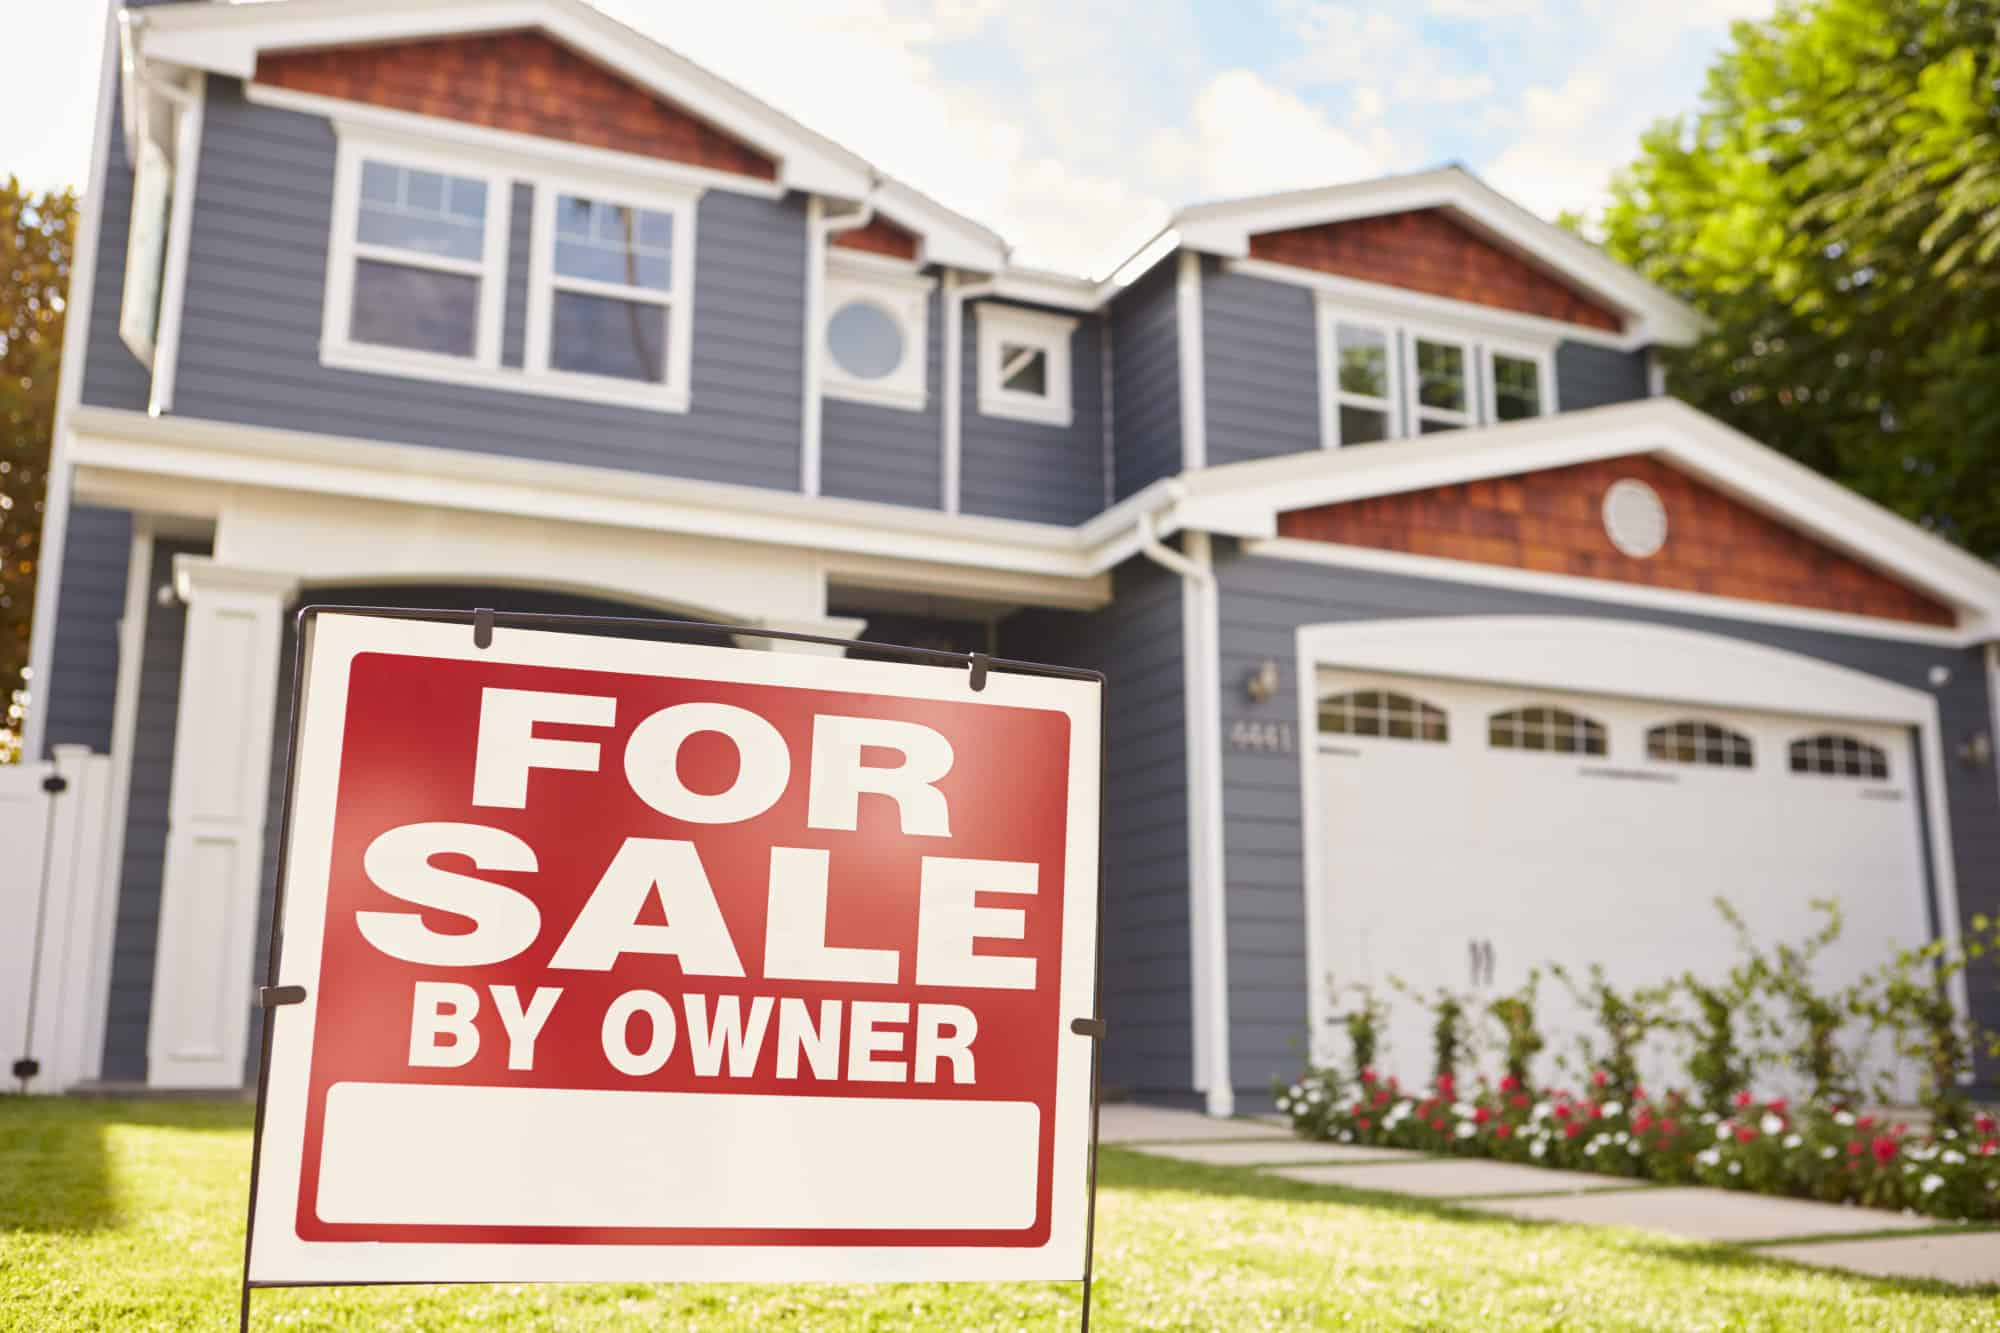 Reasons Why Home Buyers Turn to Alternative Mortgage Lenders